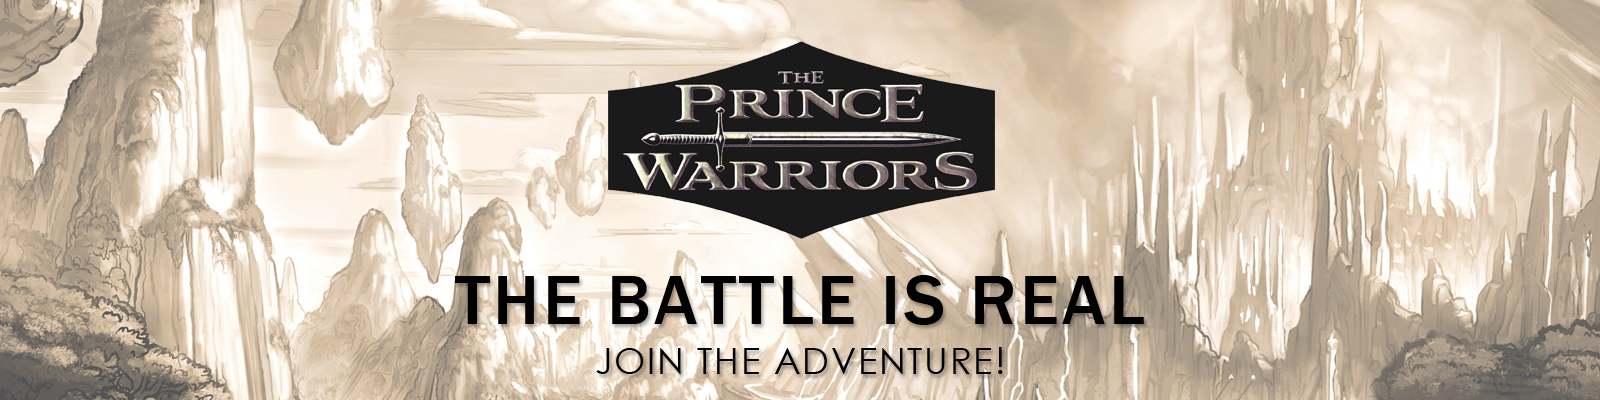 Prince Warriors Blog Banner